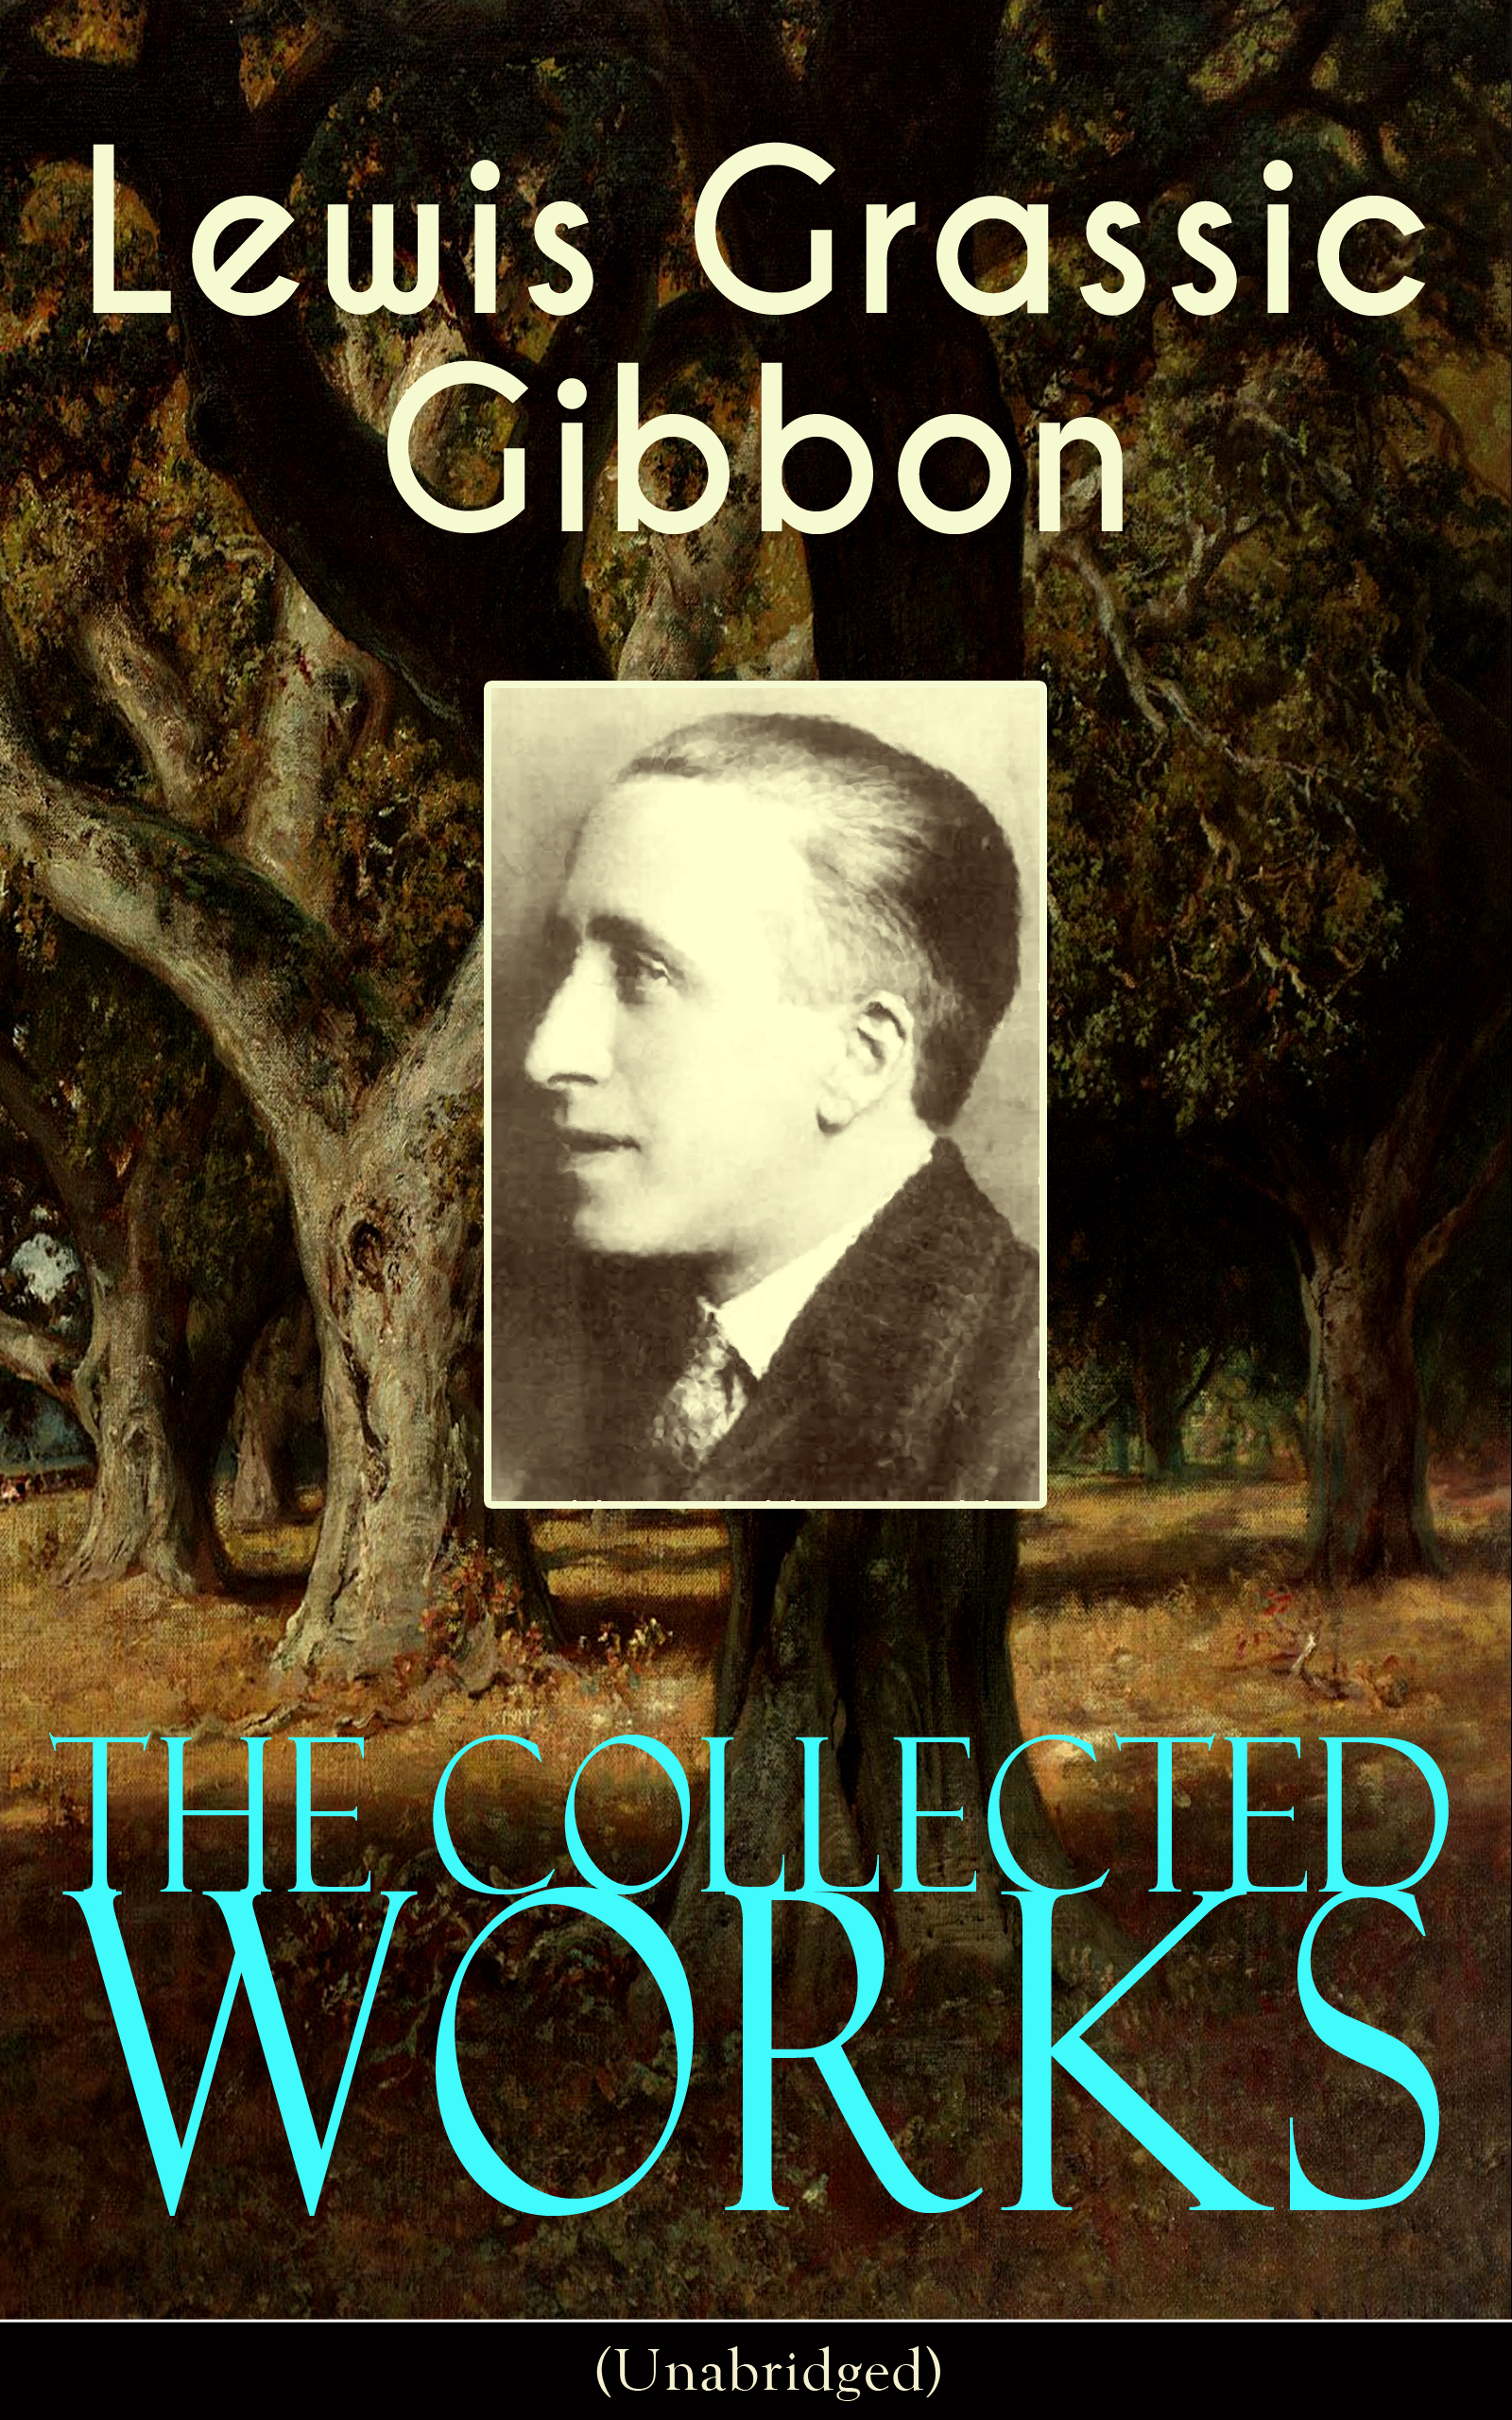 Lewis Grassic Gibbon The Collected Works of Lewis Grassic Gibbon (Unabridged)